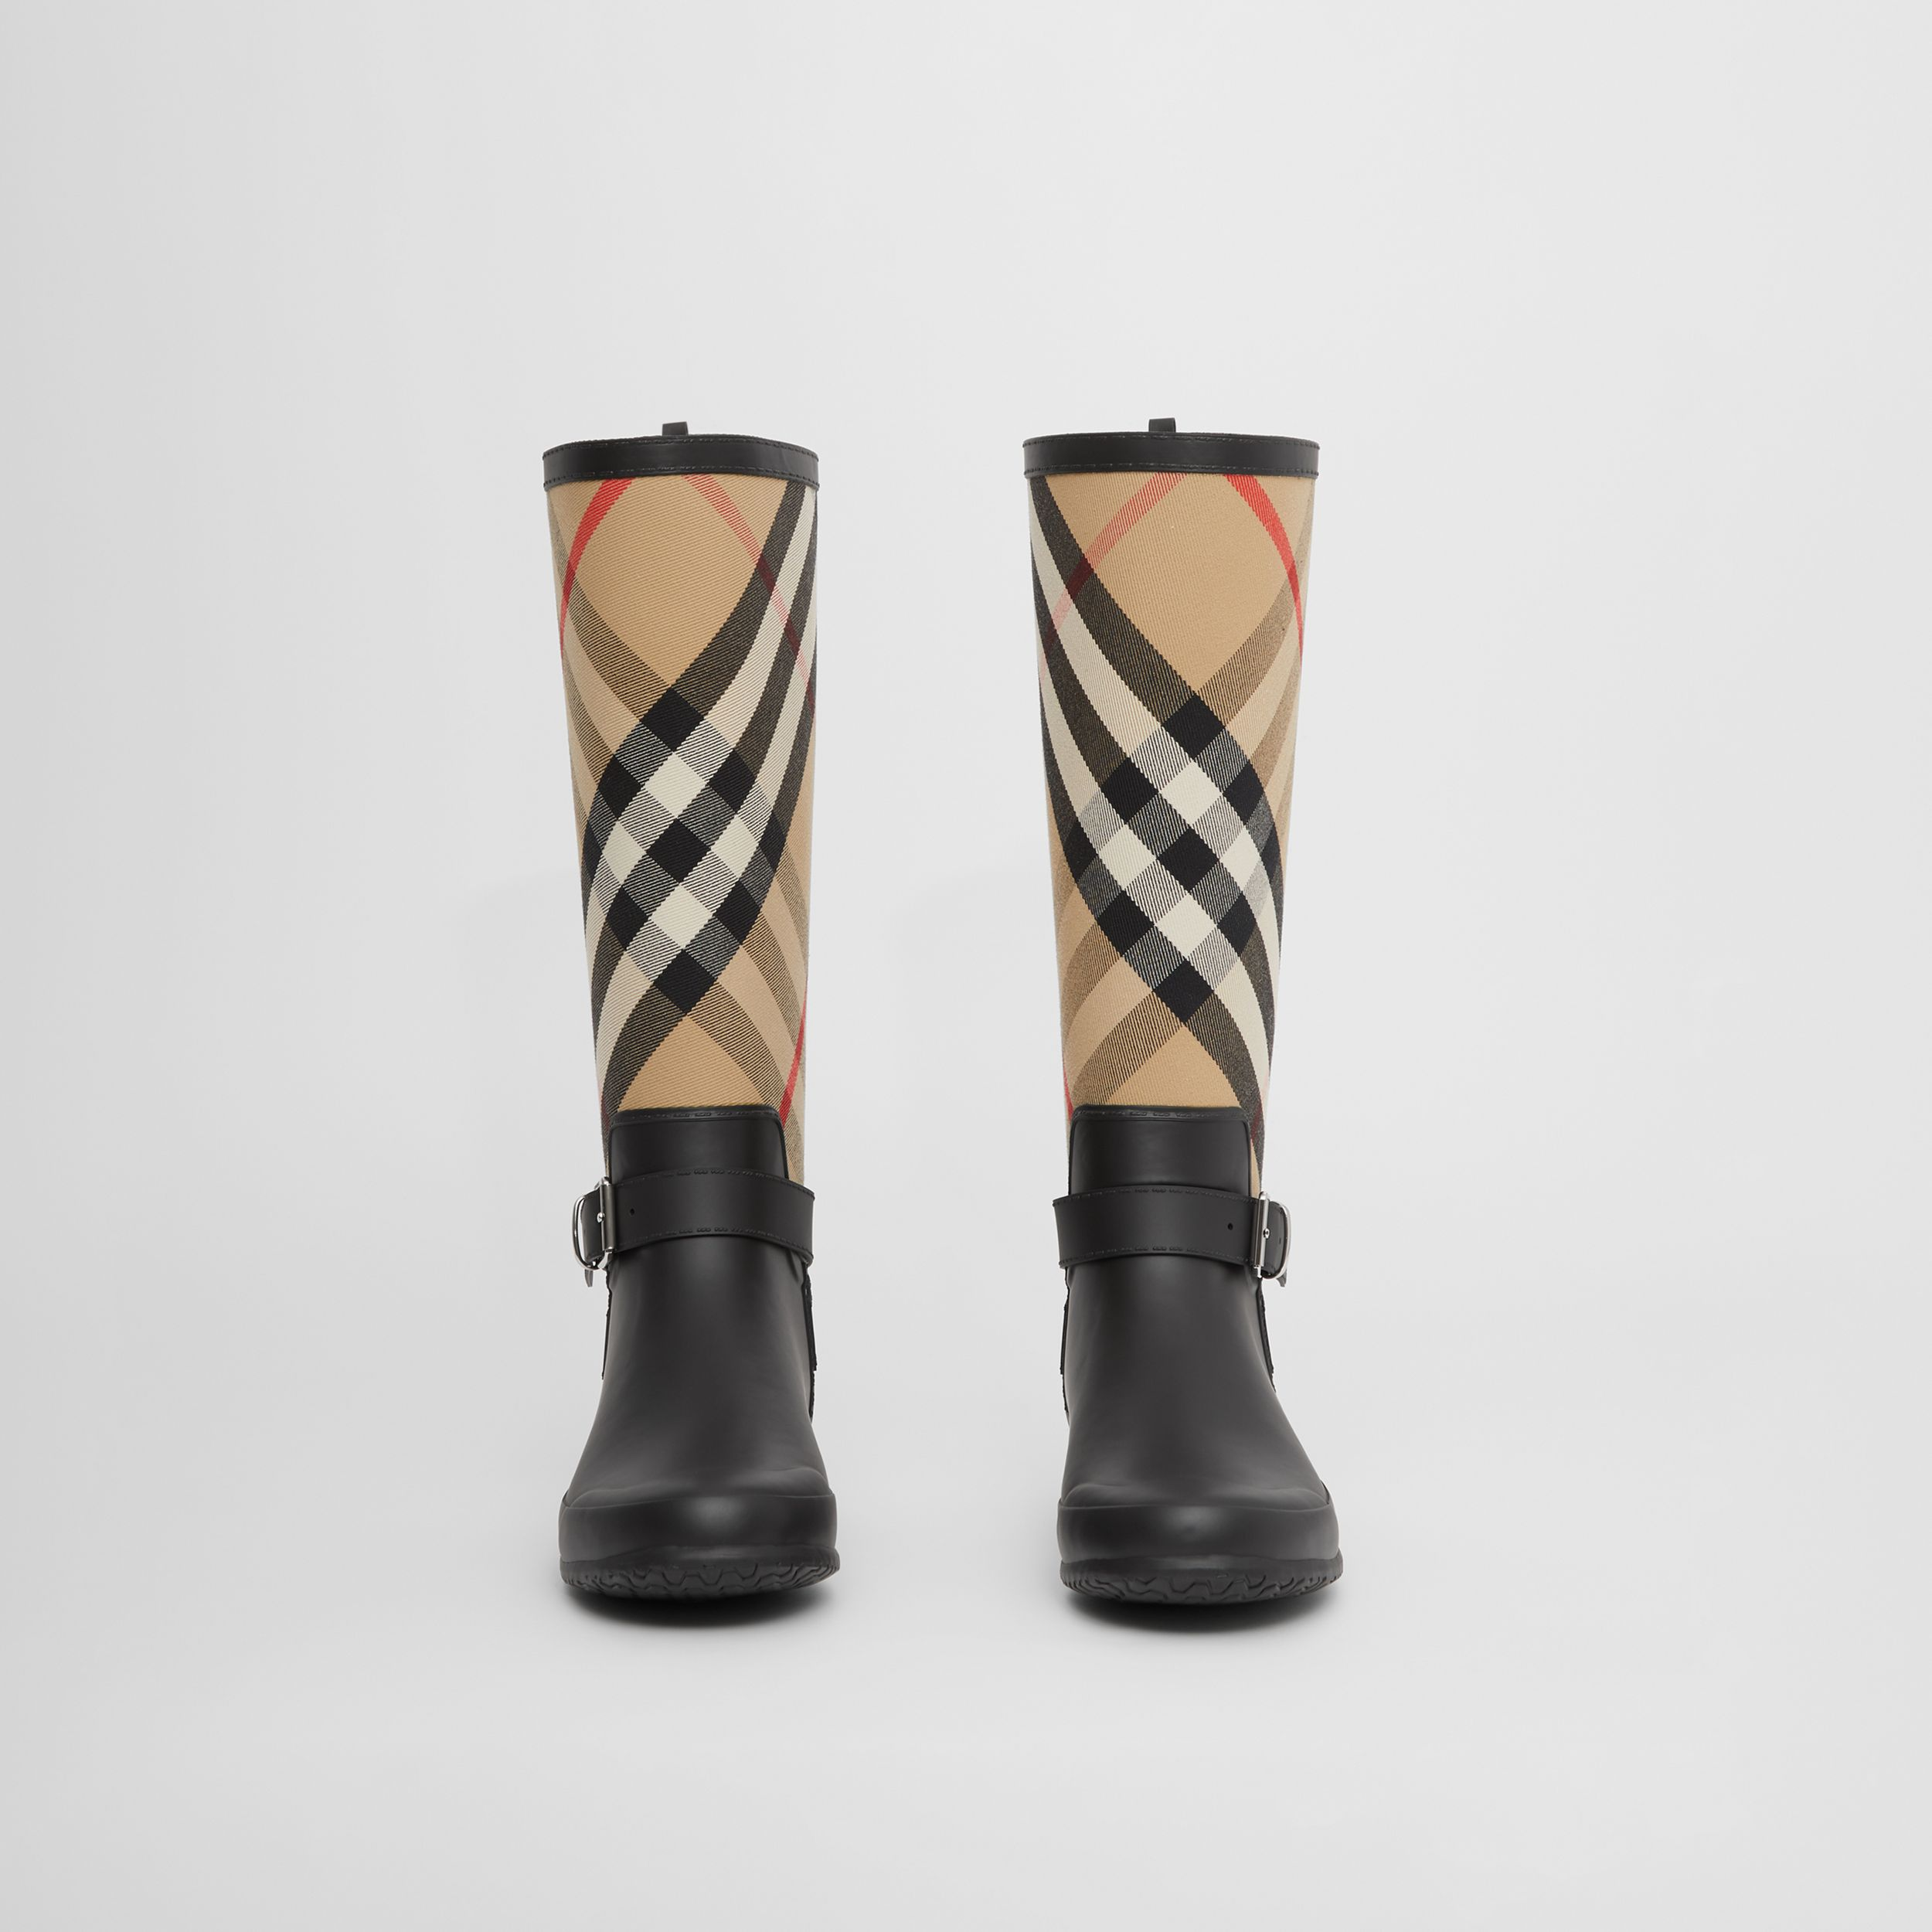 Strap Detail House Check and Rubber Rain Boots in Black/archive Beige - Women | Burberry Hong Kong S.A.R. - 4